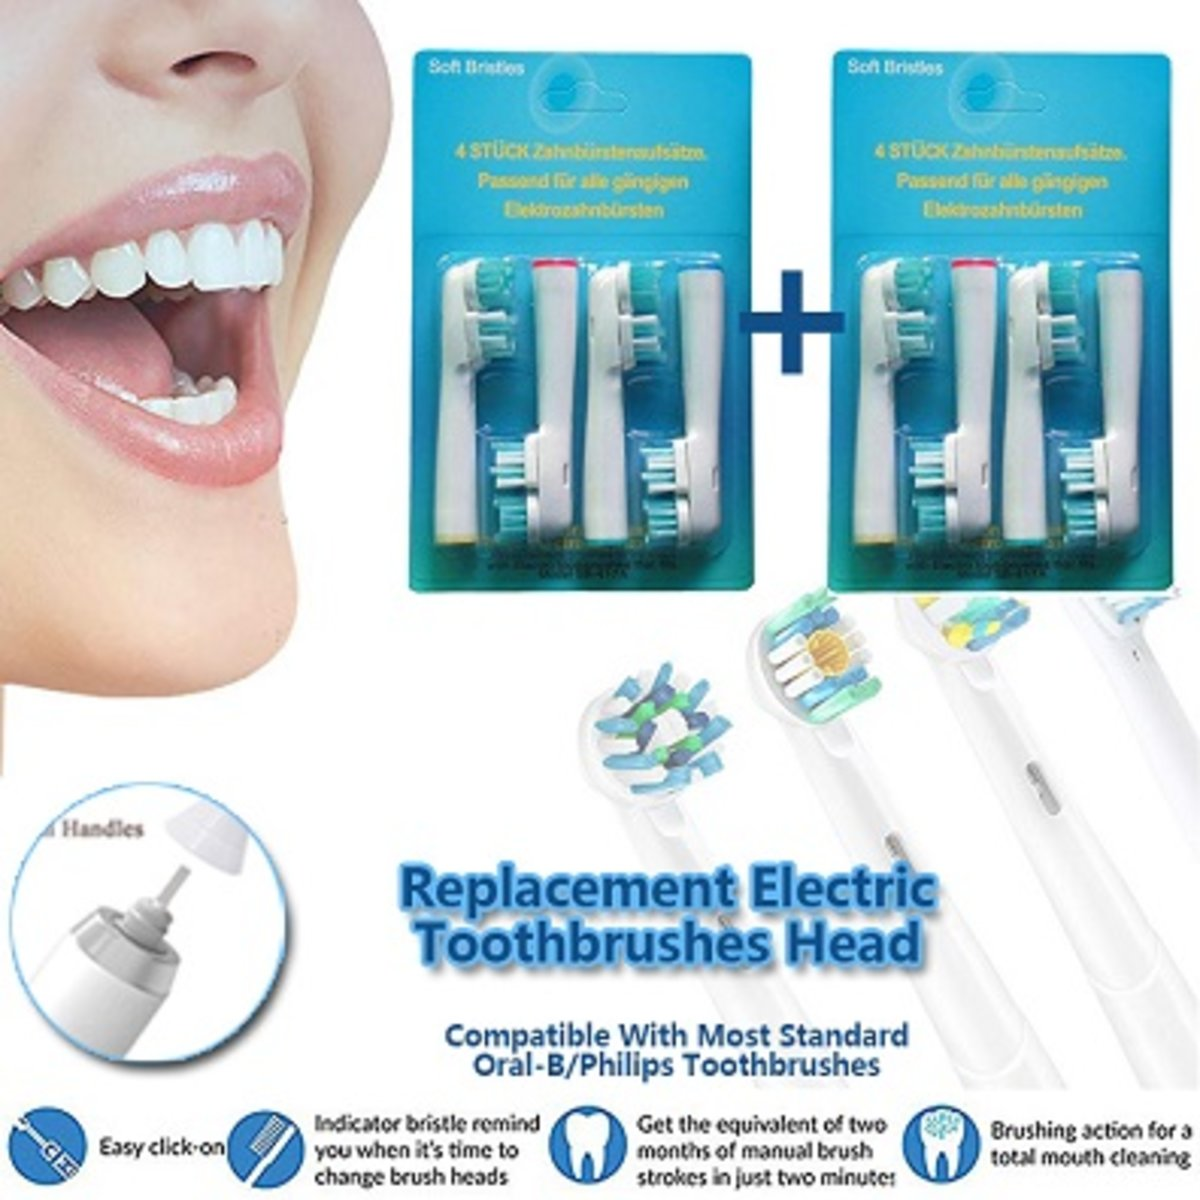 1+1 Replacement Eletric Toothbrushes Head, SB-417A, 2 sets